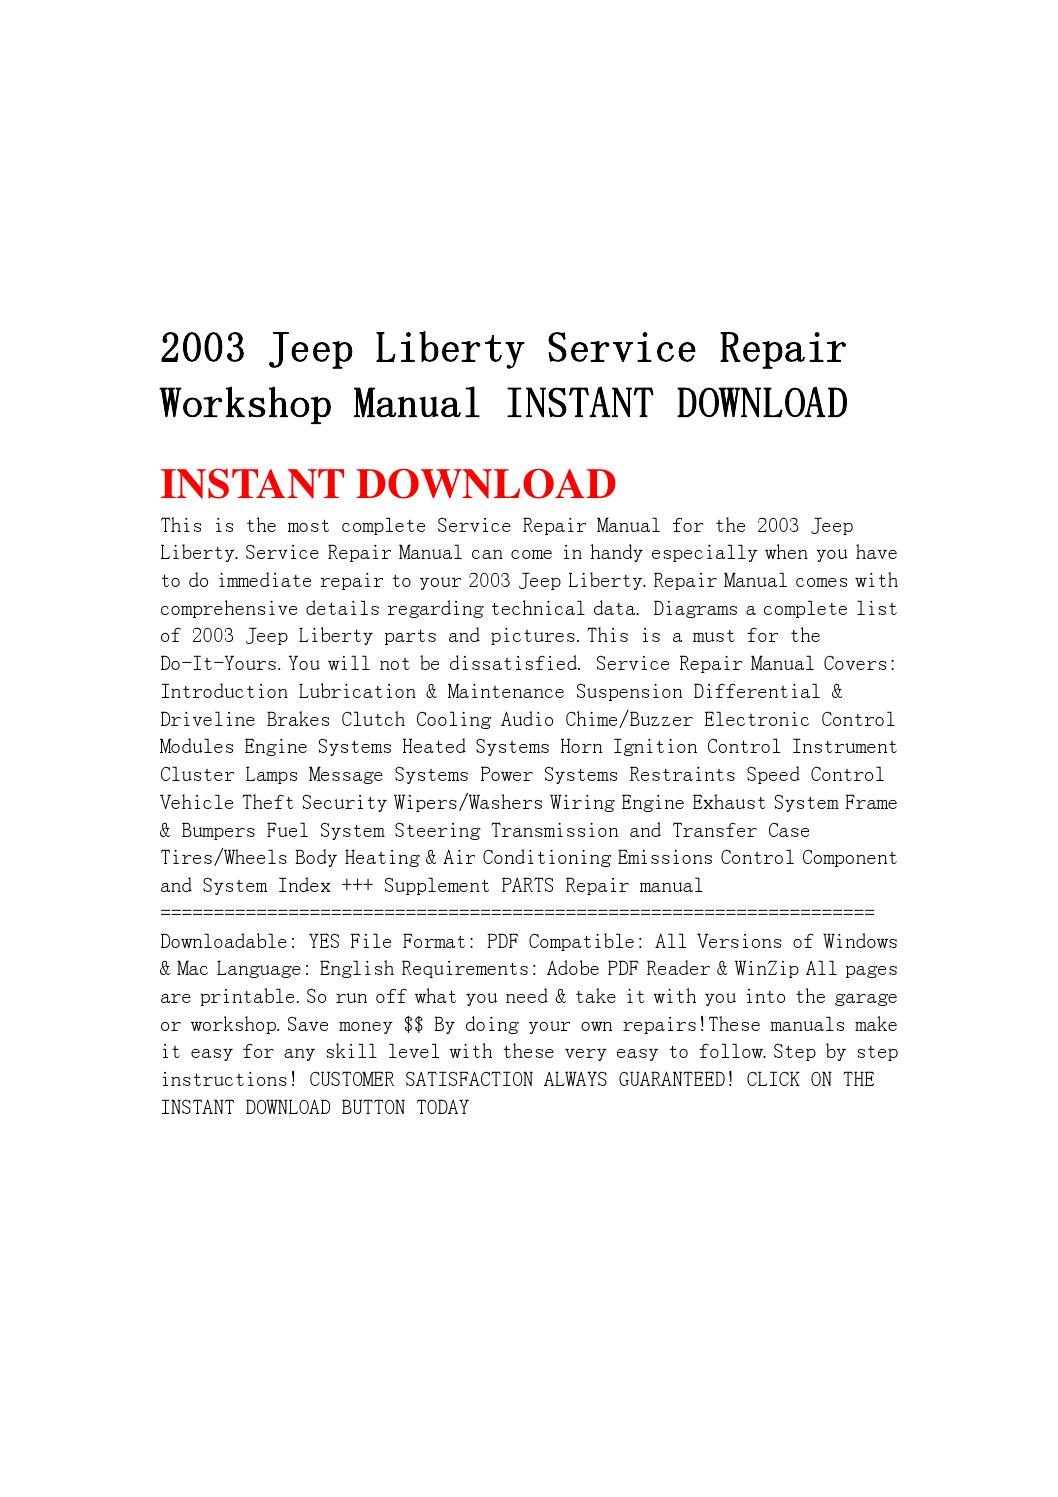 2003 Jeep Liberty Service Repair Workshop Manual Instant Download By Jnshejfmme